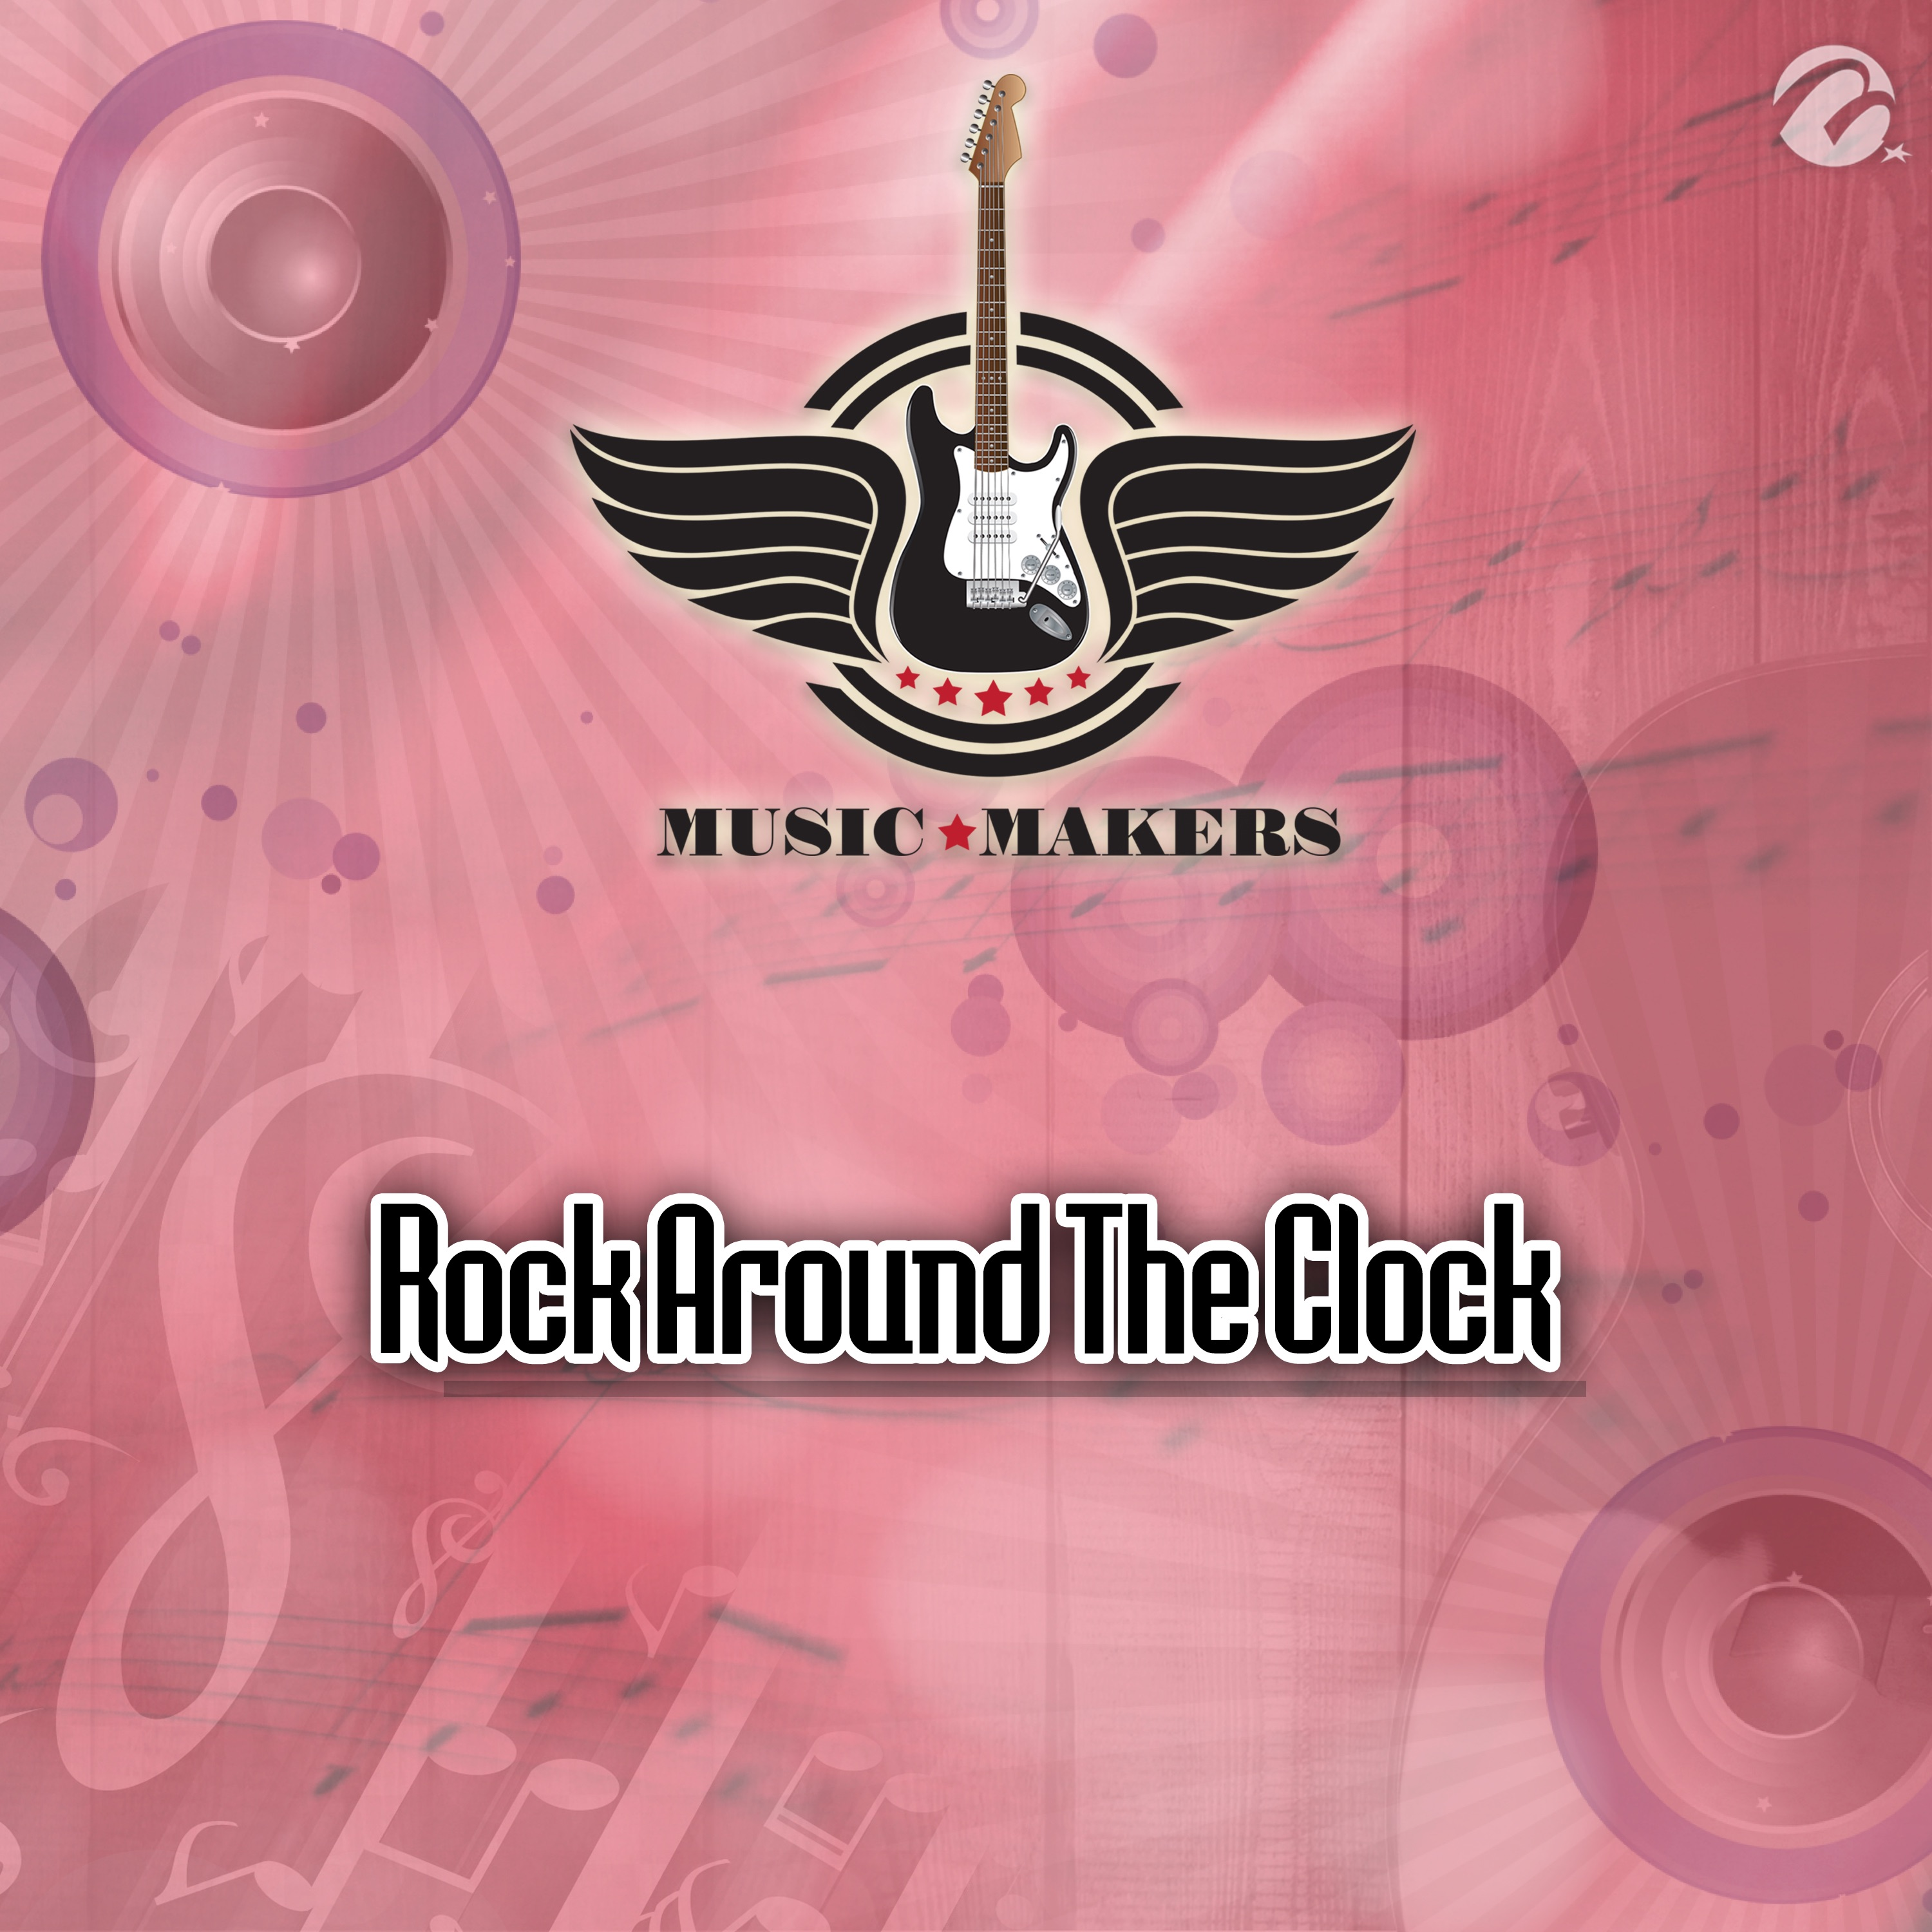 Rock Around the Clock - Single